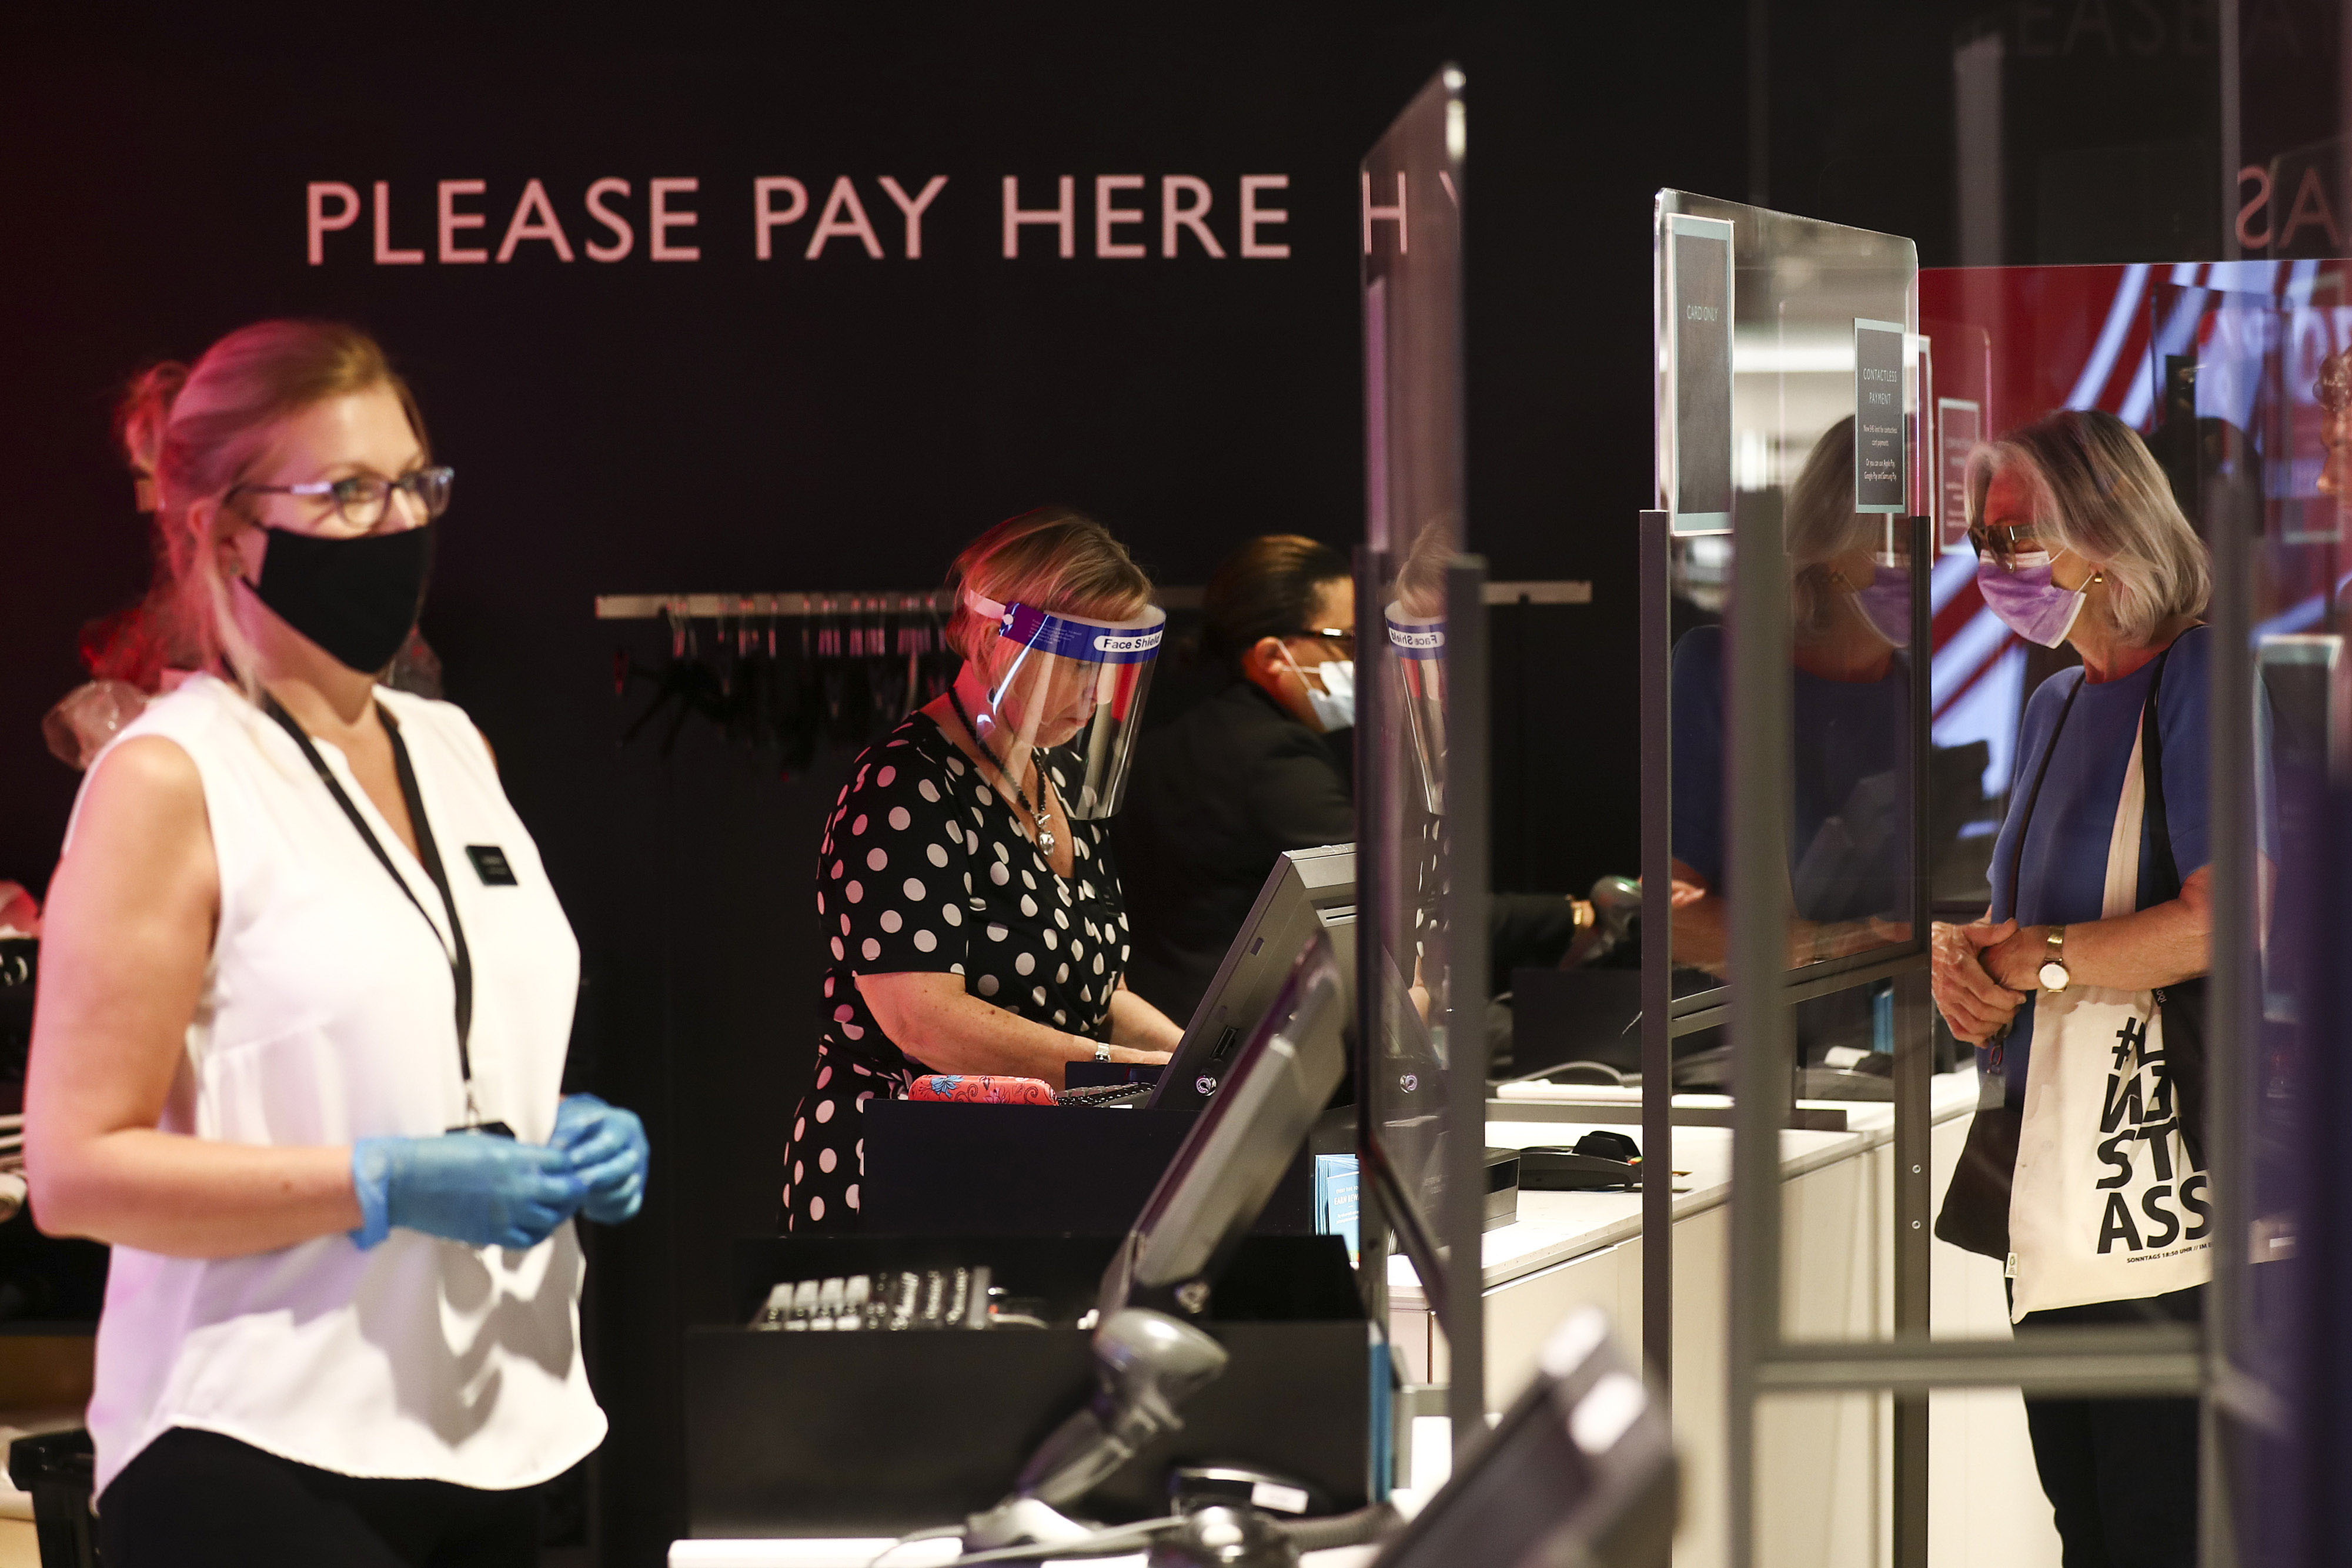 Employees serve customers on July 23 inside a John Lewis Partnership department store in London.